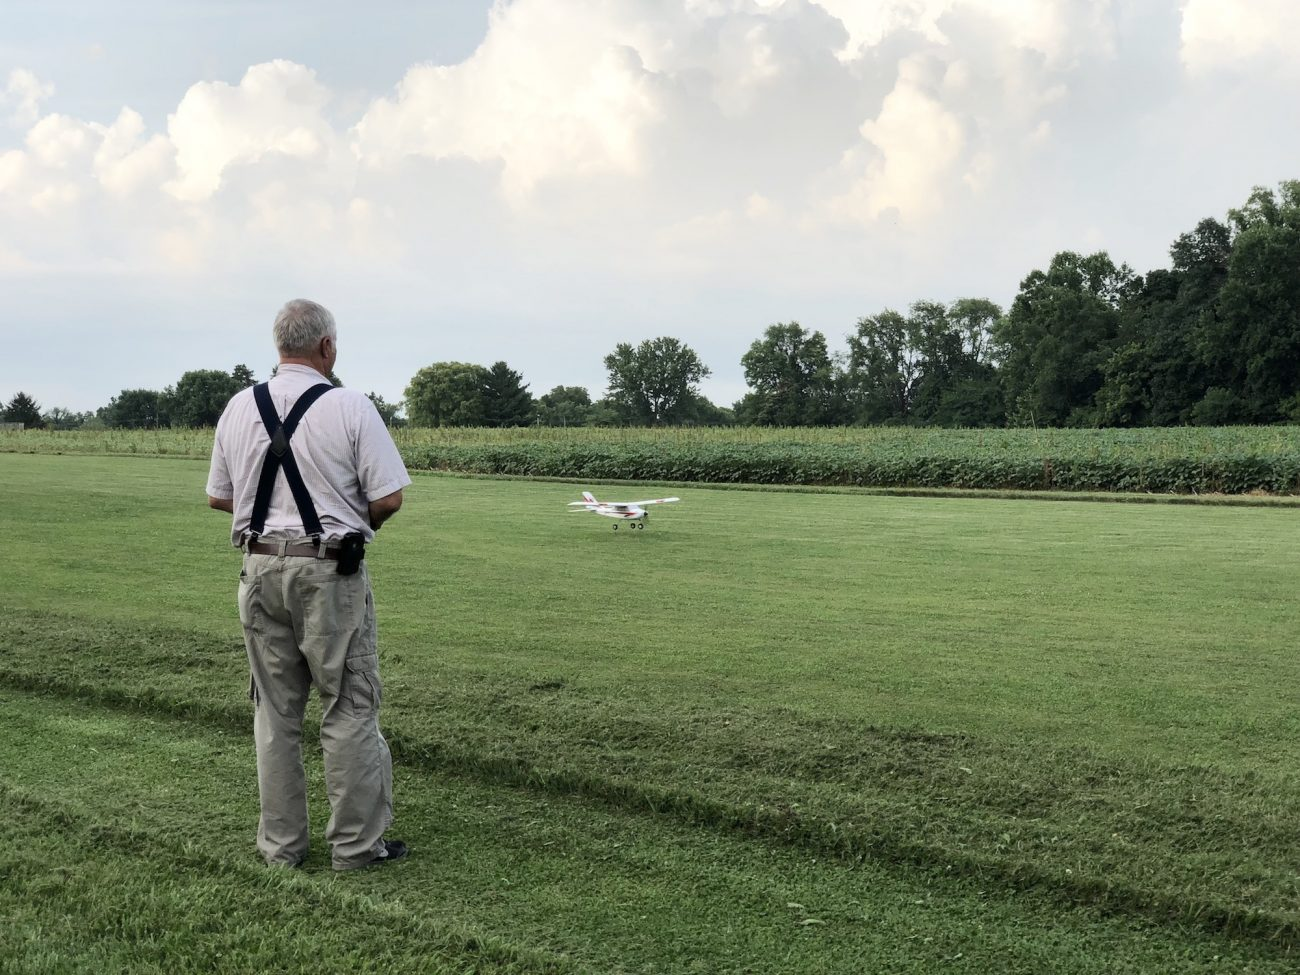 Dad and his RC Plane